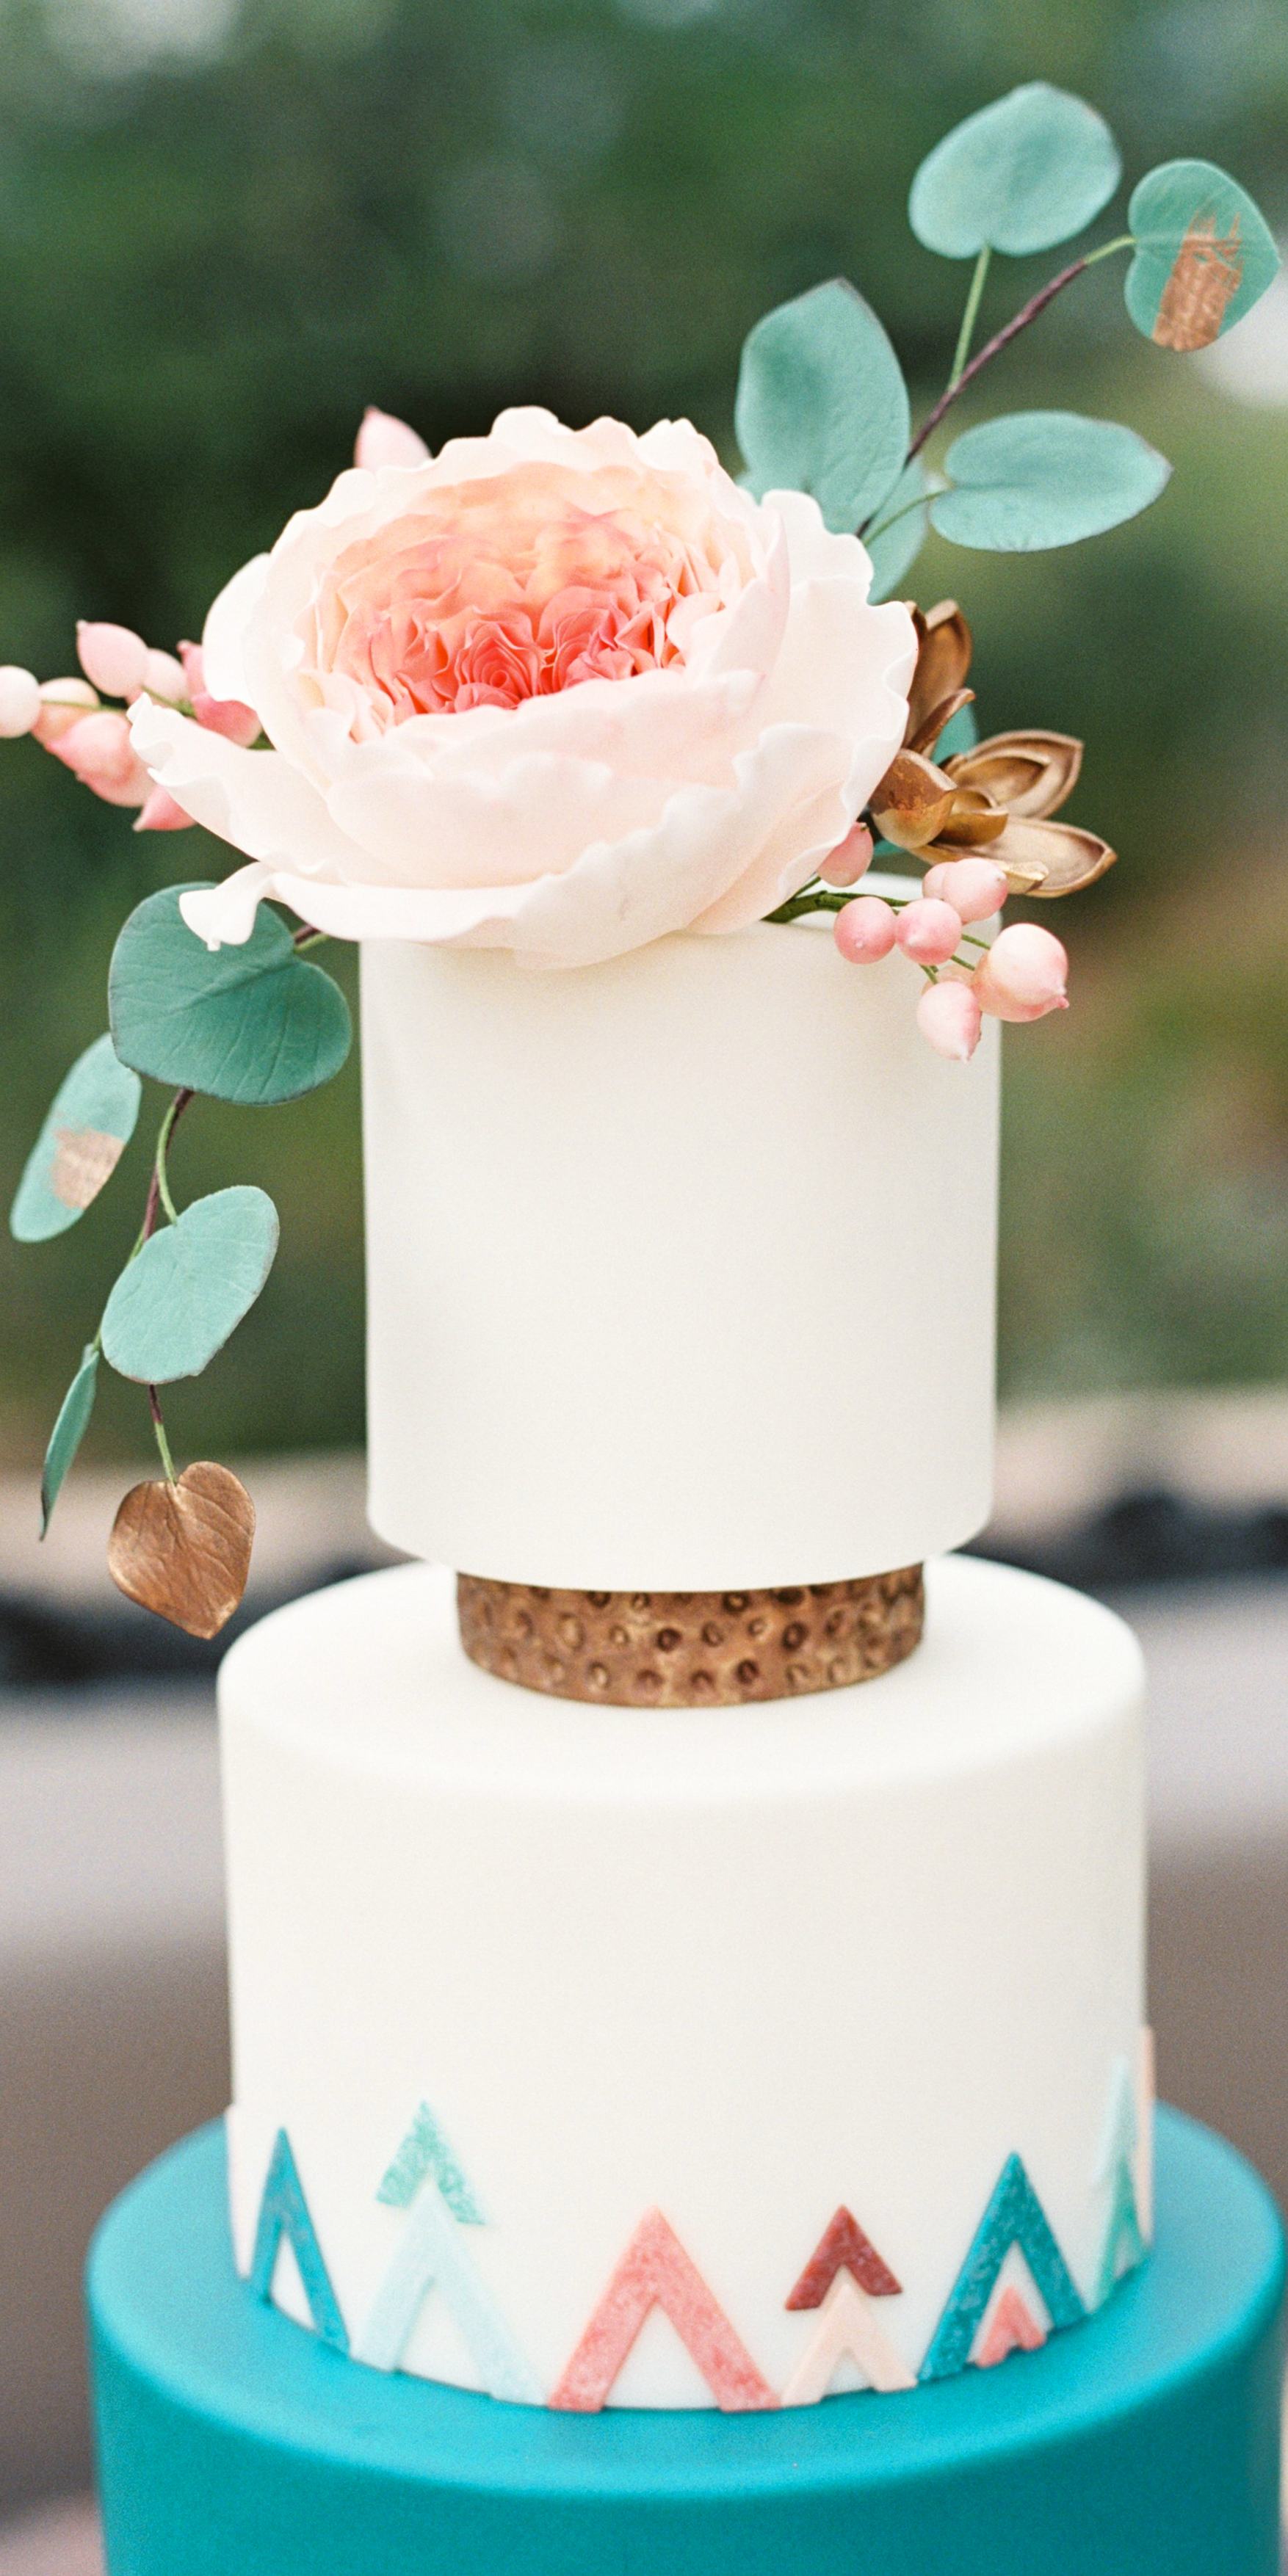 Favorite Vendor Spotlight: Heartsweet Cakes